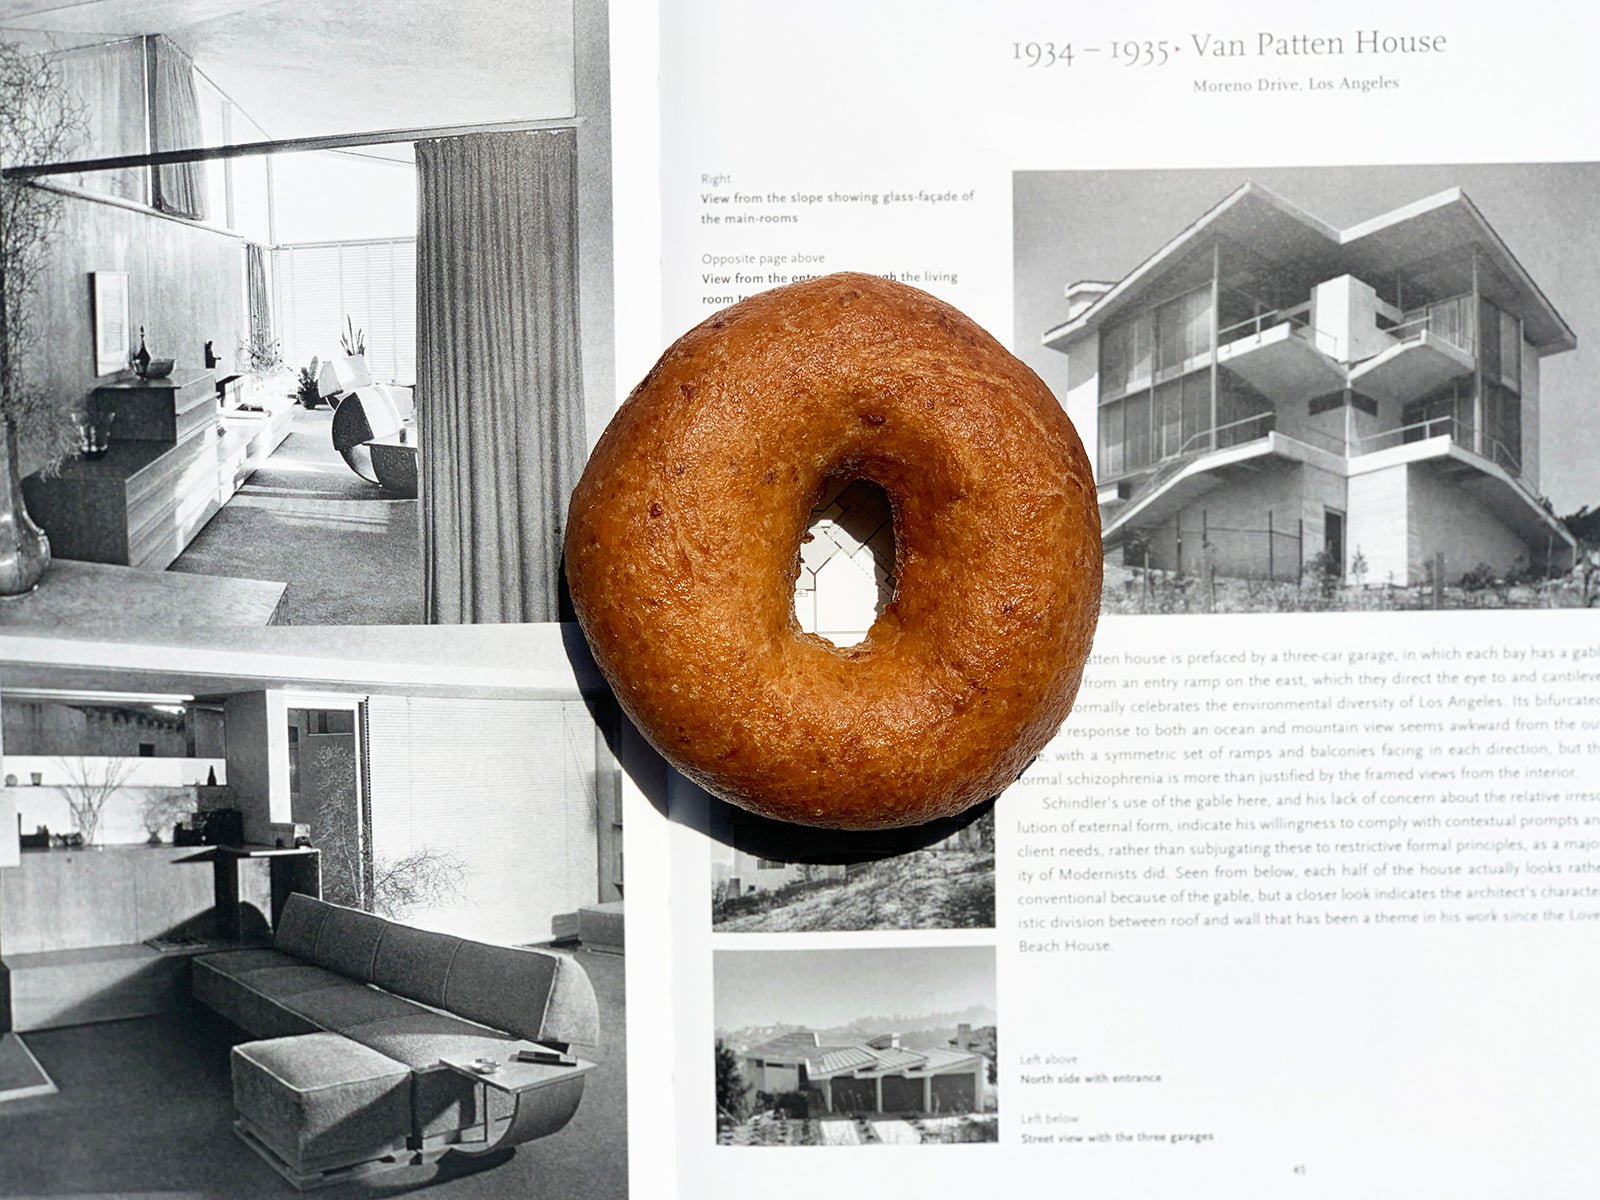 Gluten-free bagel displayed on a book about architecture - GFY Kitchens